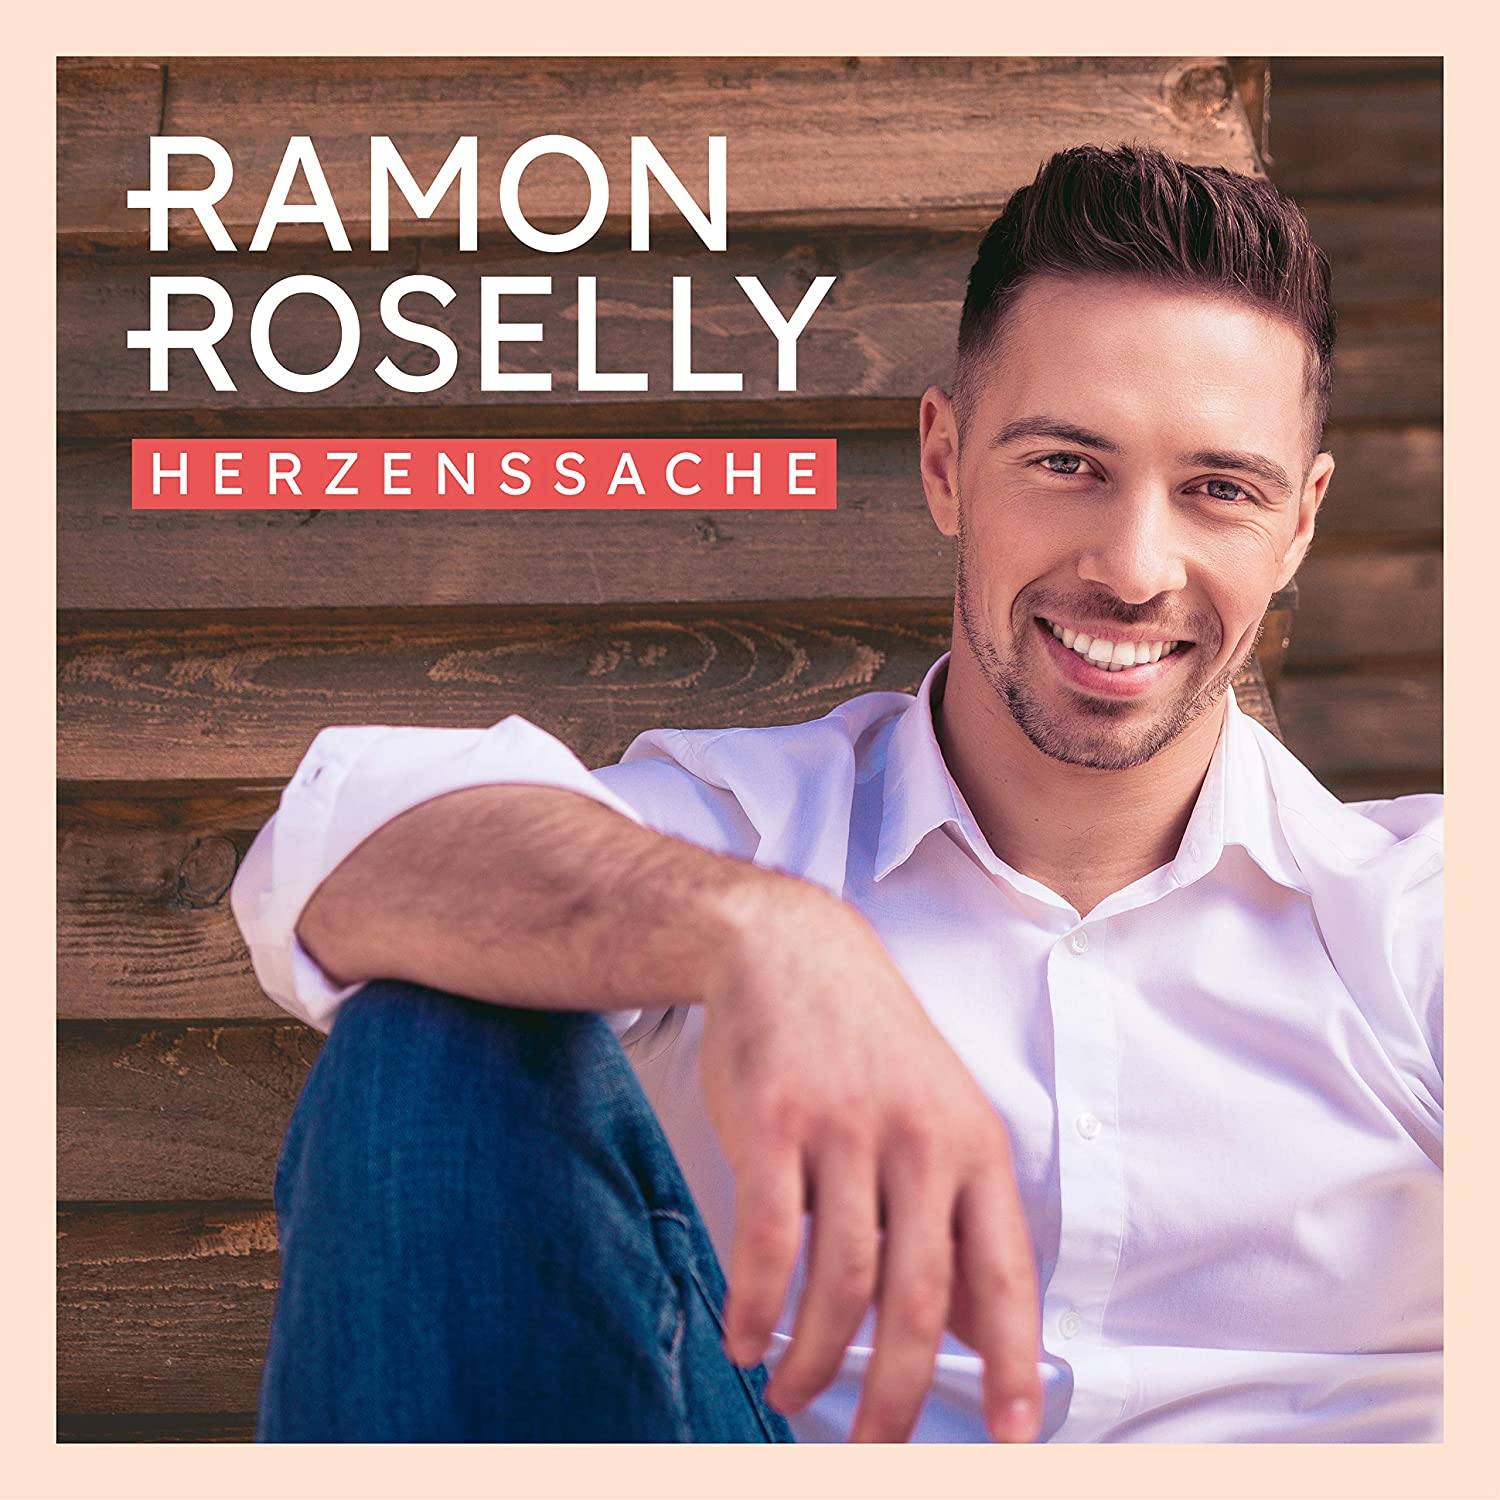 RAMON ROSELLY * Herzenssache (CD)